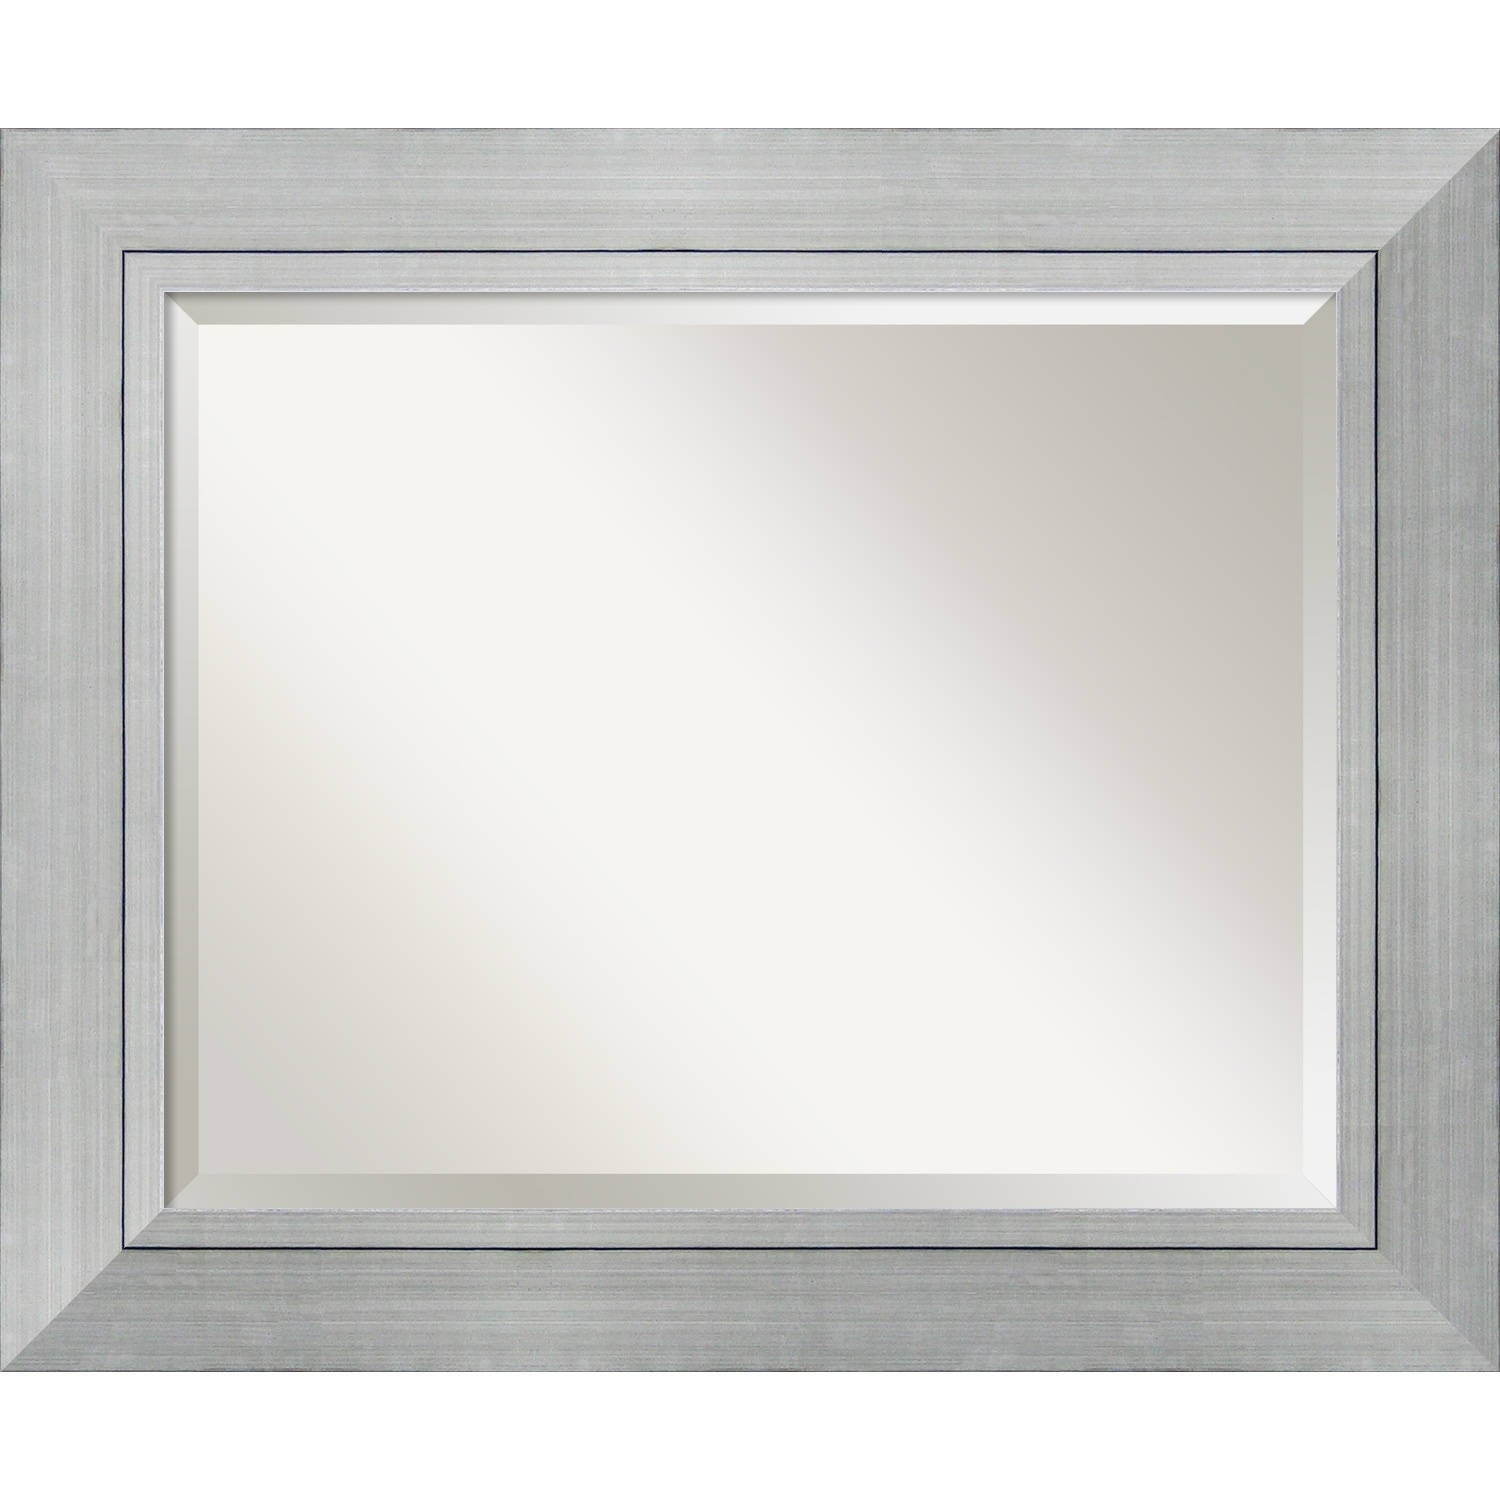 Bathroom Mirror Large Romano Silver 36 X 30 Inch Free Shipping Today 15368741